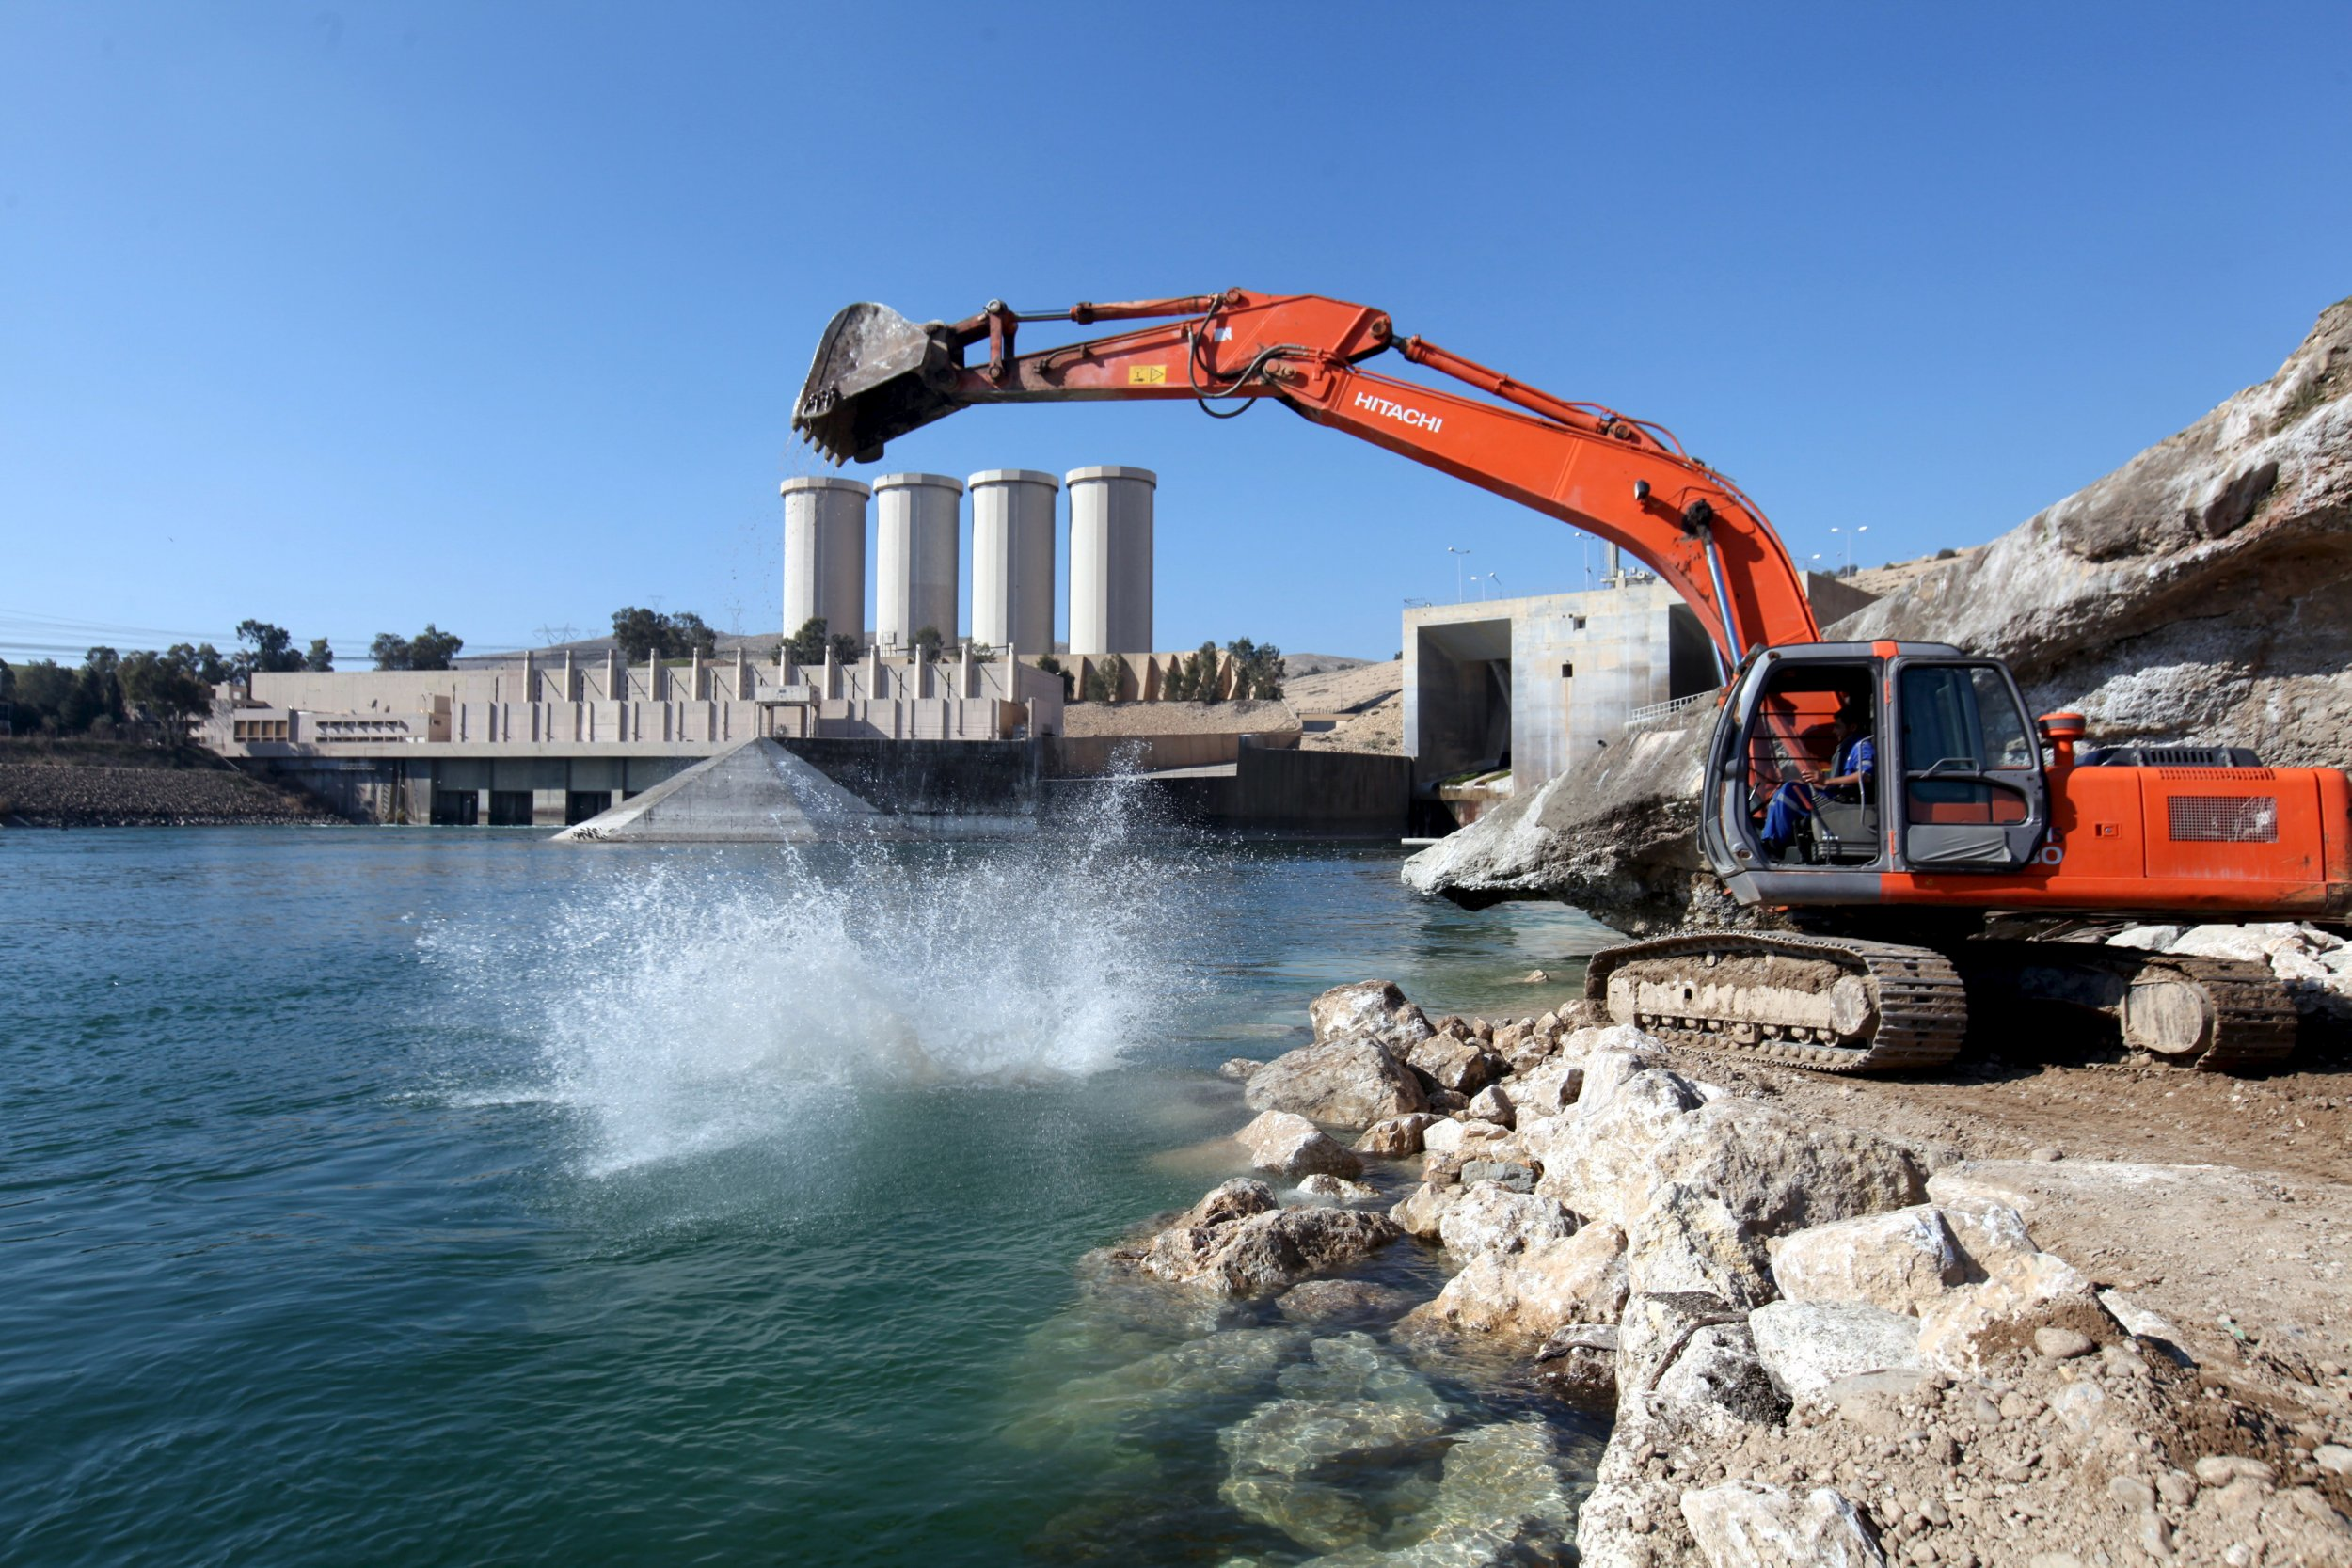 Massive dam at risk of catastrophic collapse could unleash 68ft of water